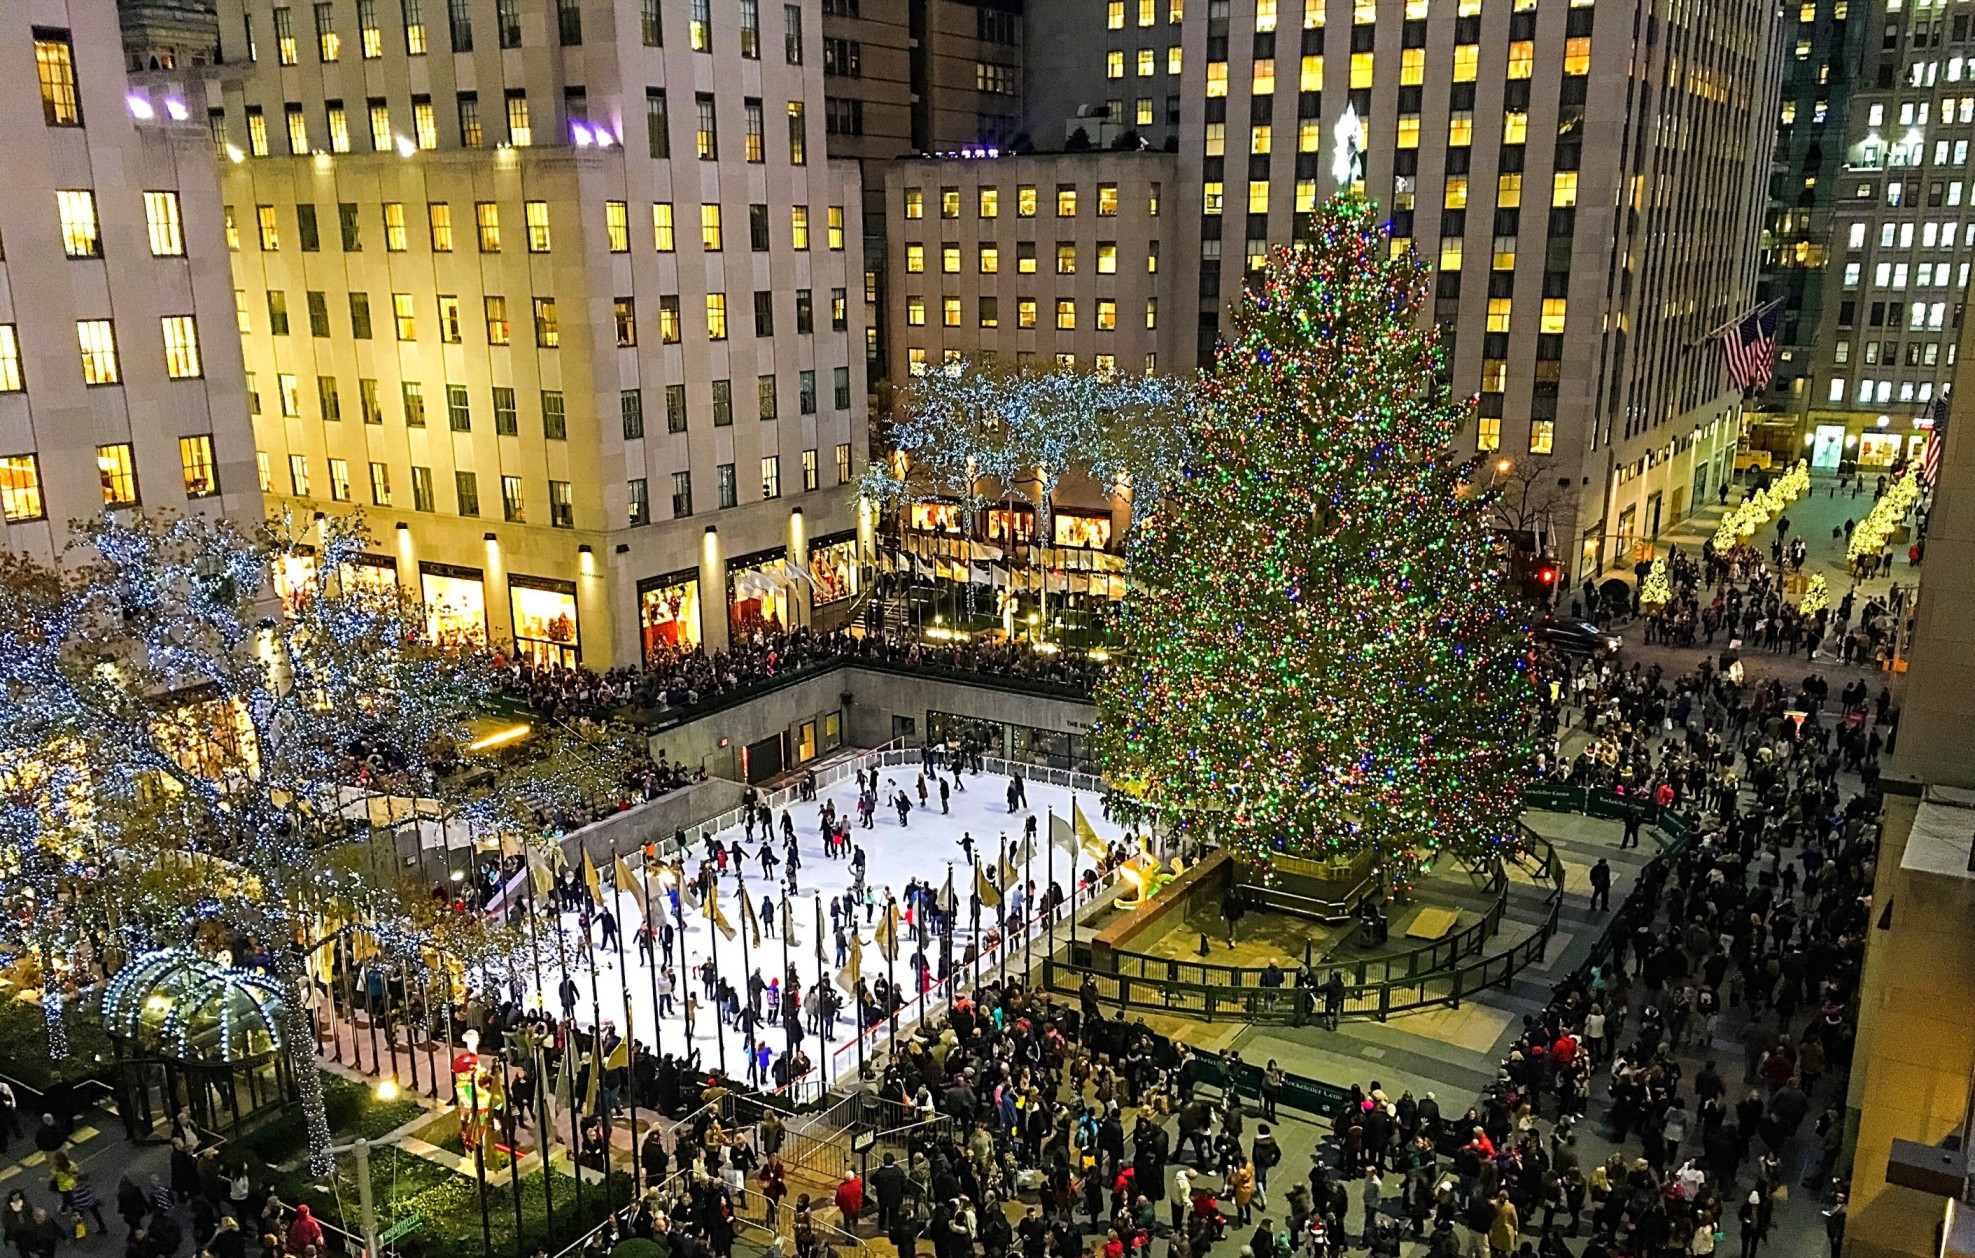 Rockefeller Center Plaza with Christmas Tree